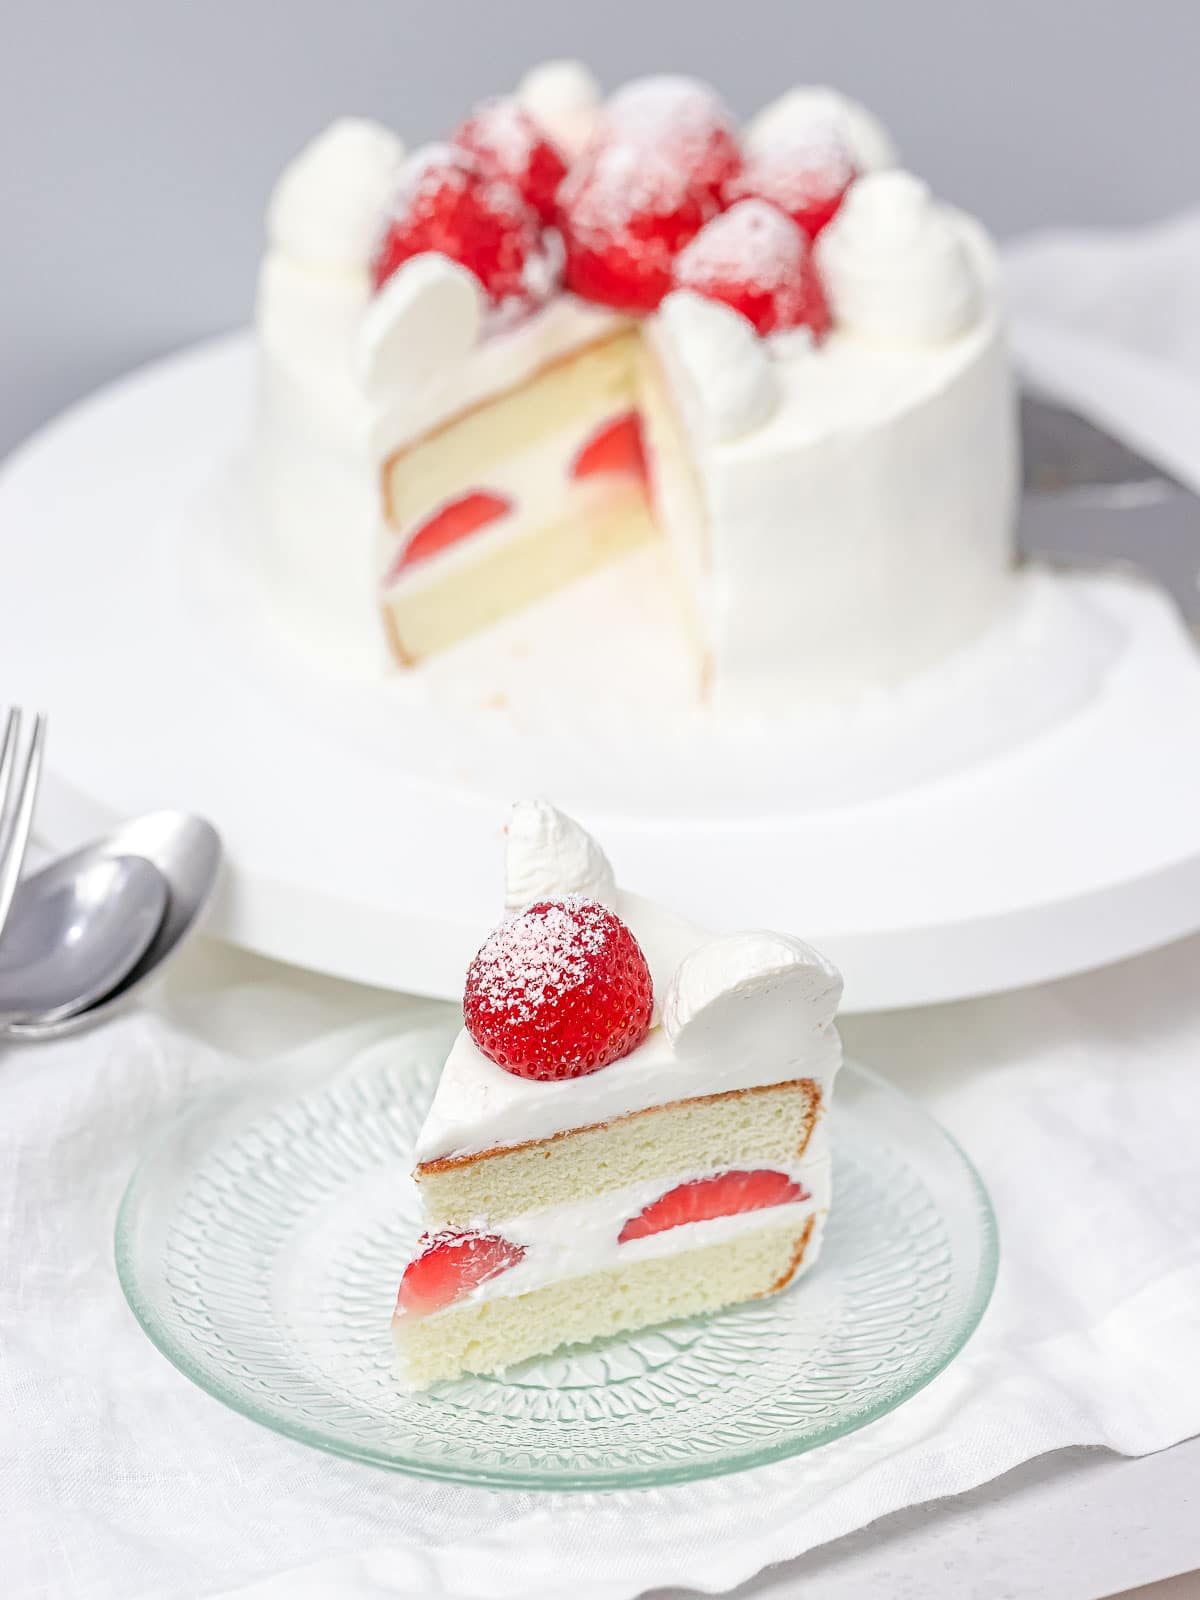 a slice of Japanese strawberry shortcake on a glass plate with the whole cake in the background